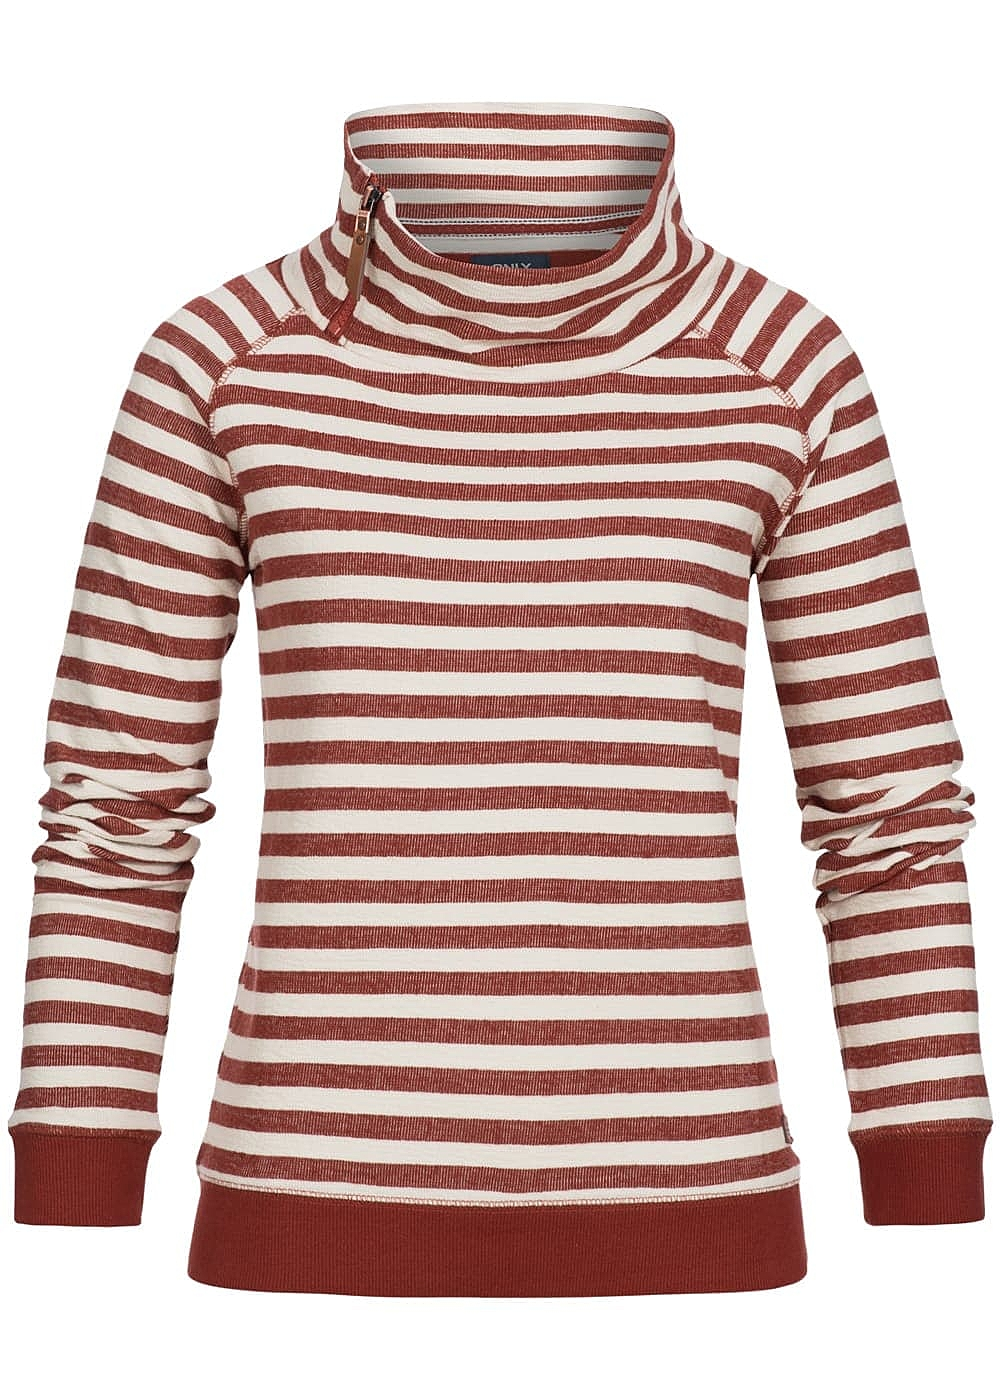 ONLY Damen Sweater gestreift Zipper am Stehkragen rot cloud dancer weiss - Art.-Nr.: 16127529-XS-RE